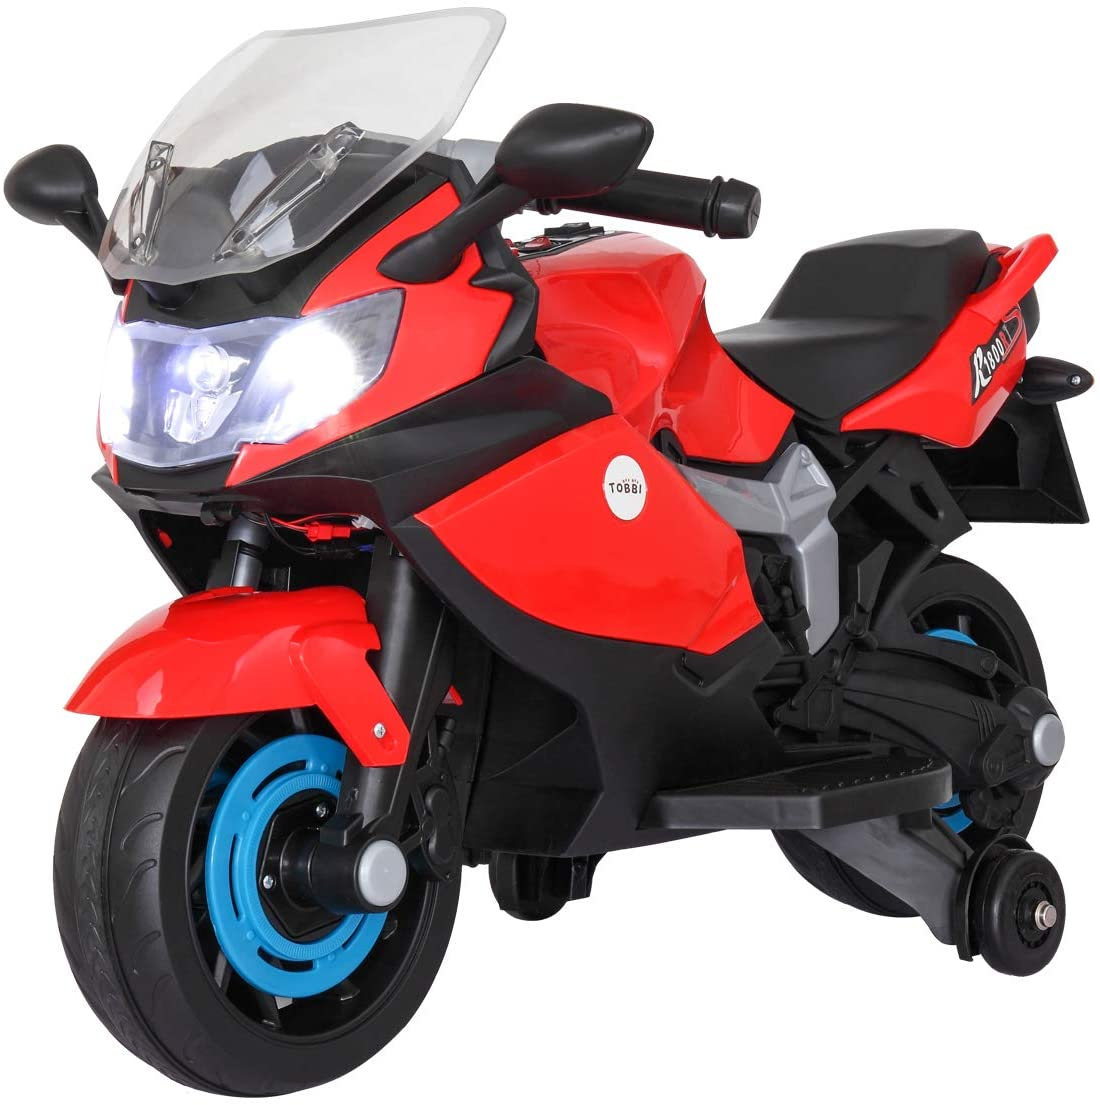 Top 10 Best Electric Motorcycles for Kids of [year] - Buying Guide 4